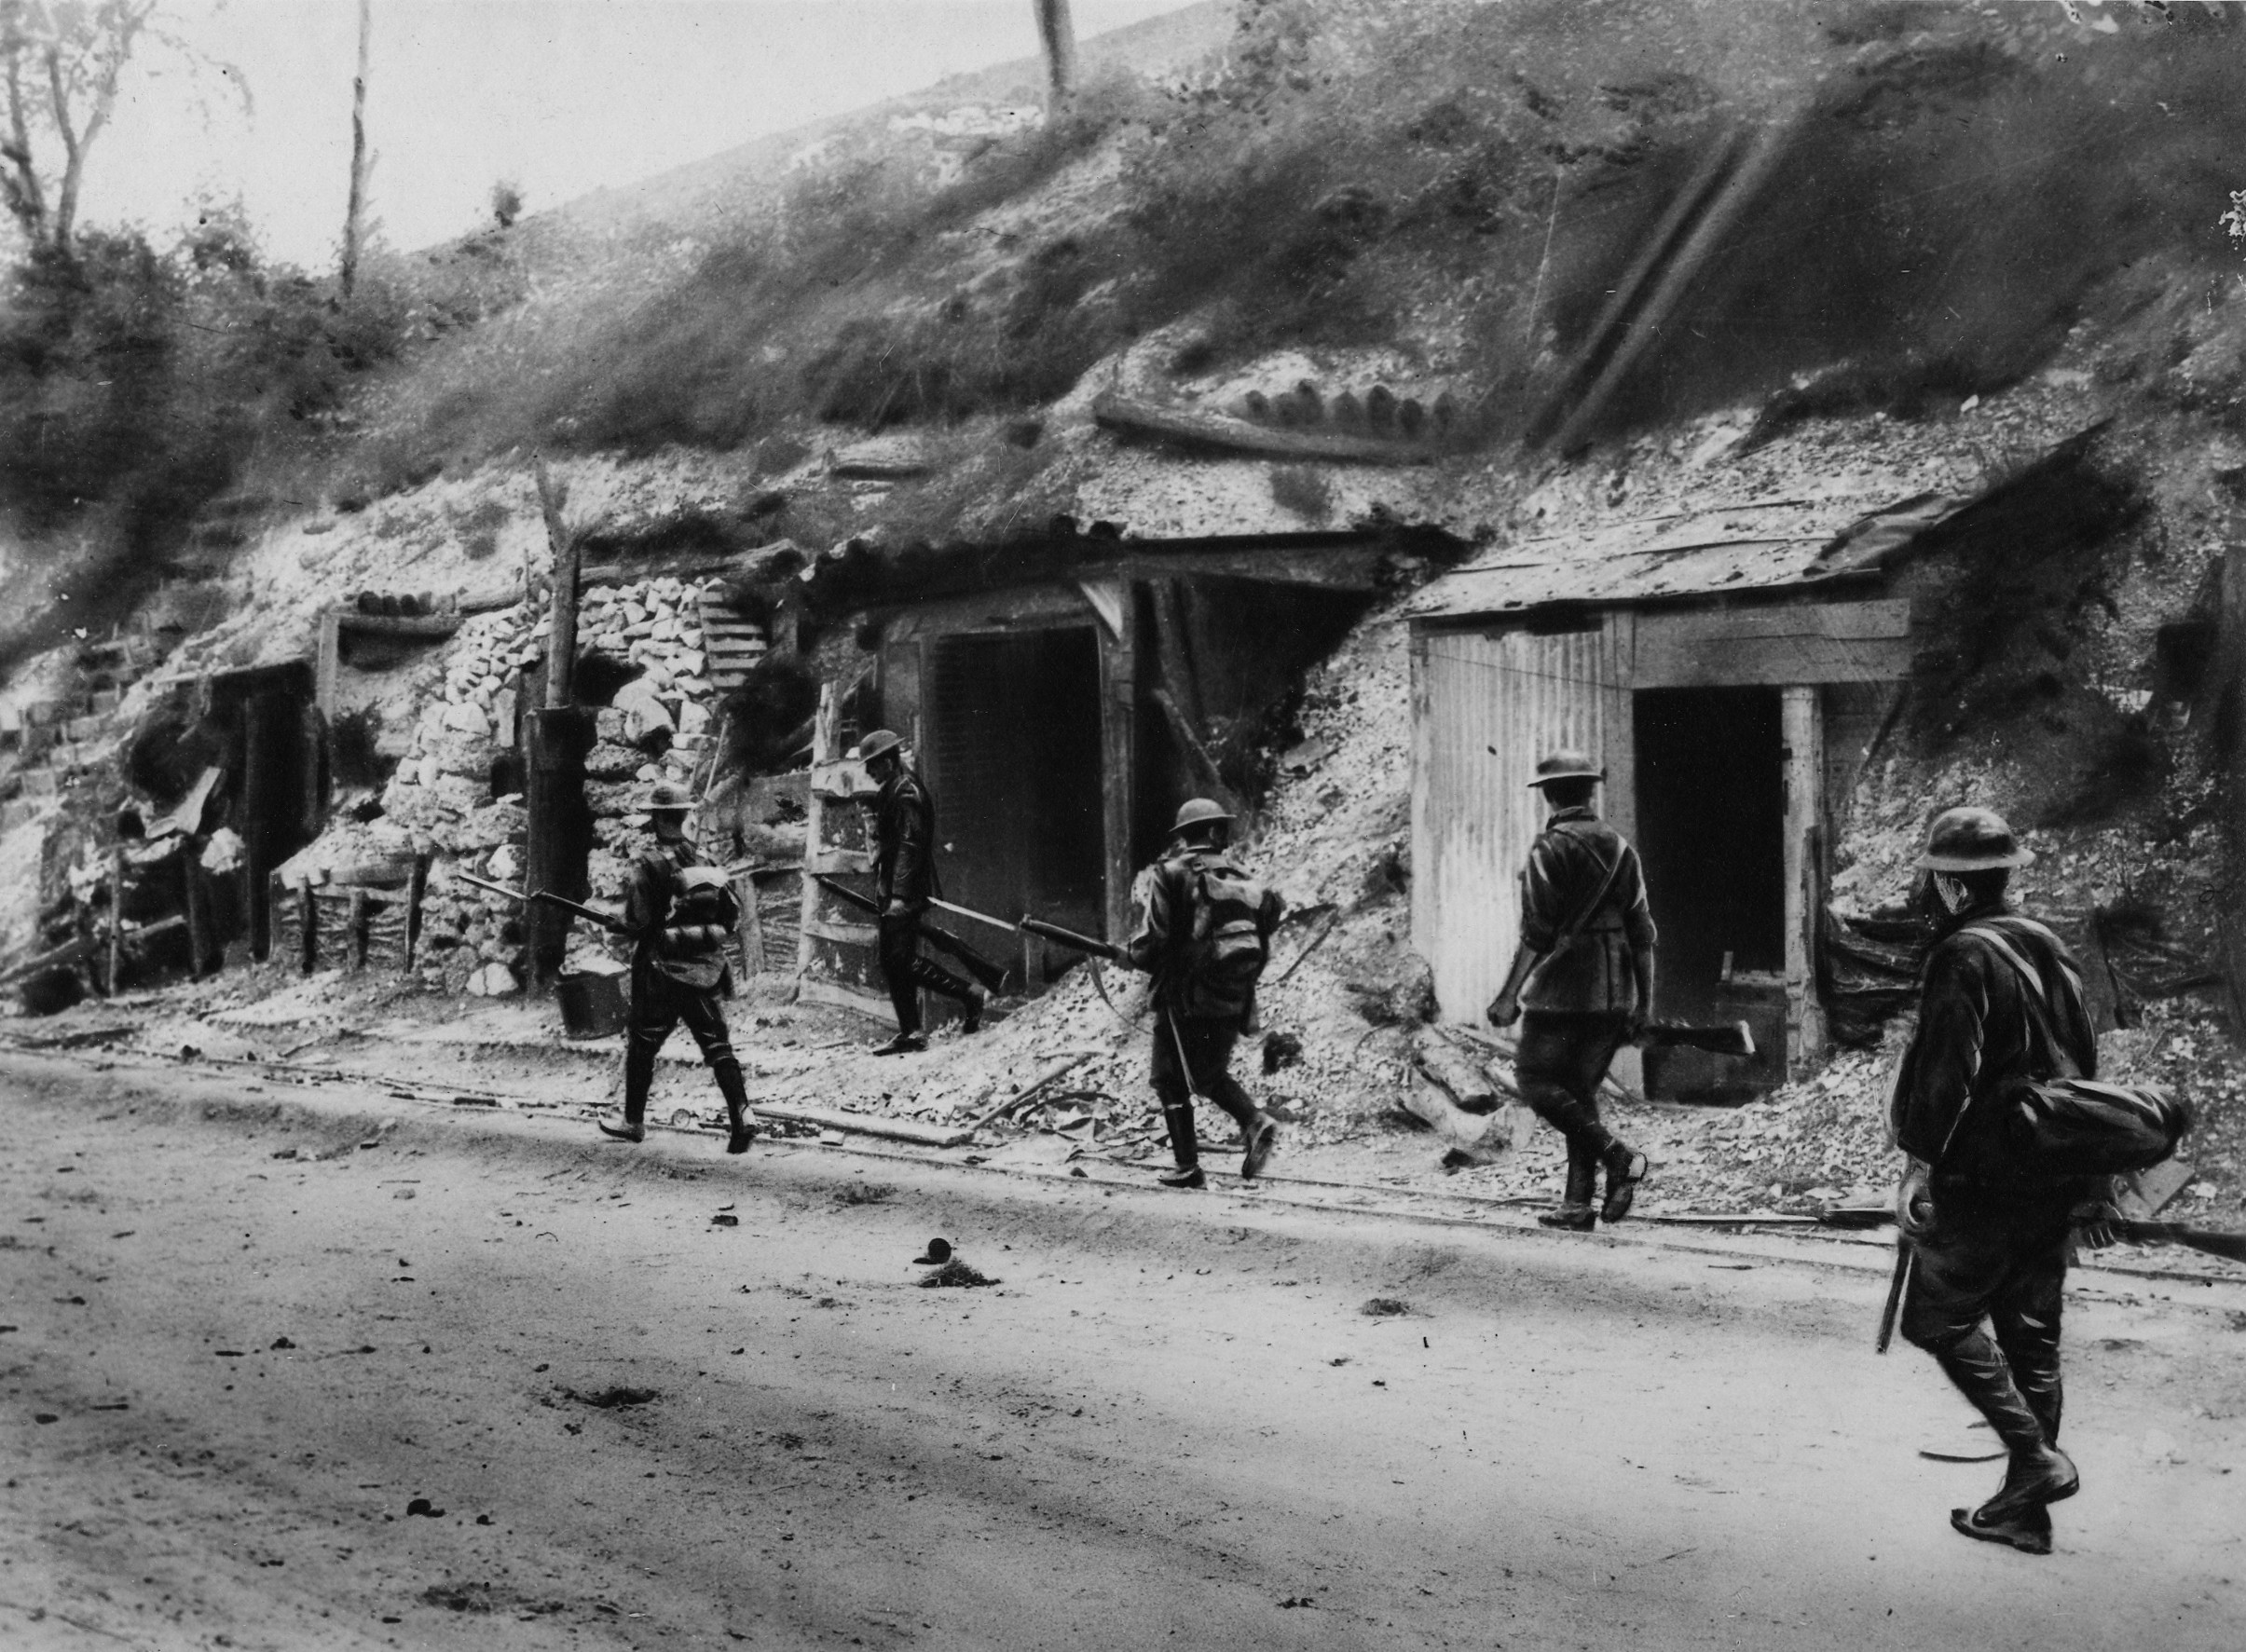 A patrol of No. 5 Platoon of B Company, 9th Battalion, in charge of Lieutenant King, searching dugouts during a daylight advance of A and B Companies near Cappy.